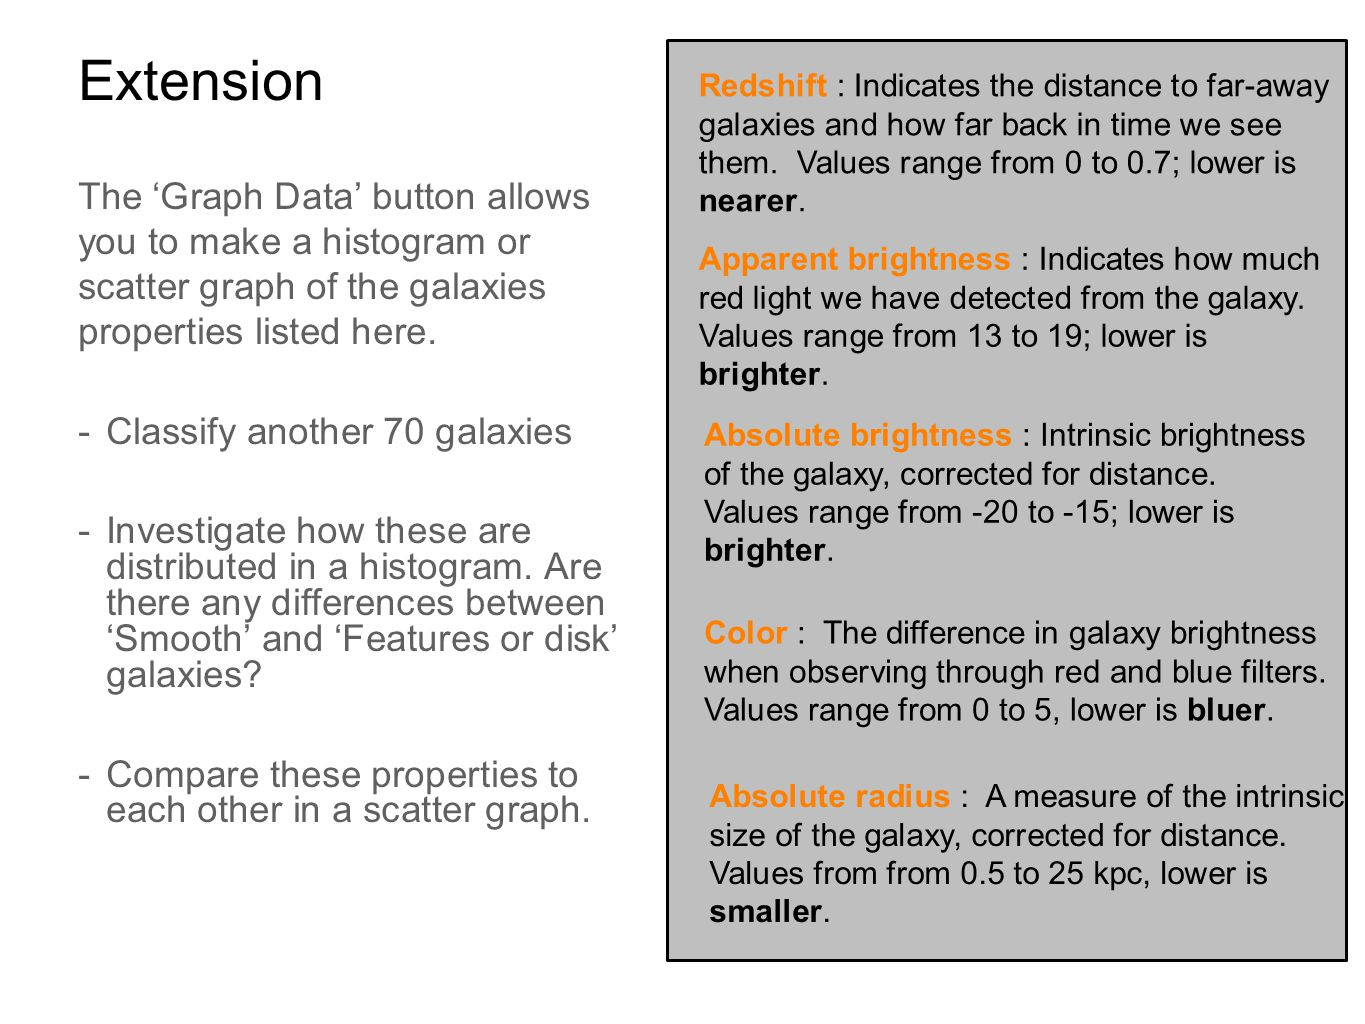 Extension The 'Graph Data' button allows you to make a histogram or scatter graph of the galaxies properties listed here.